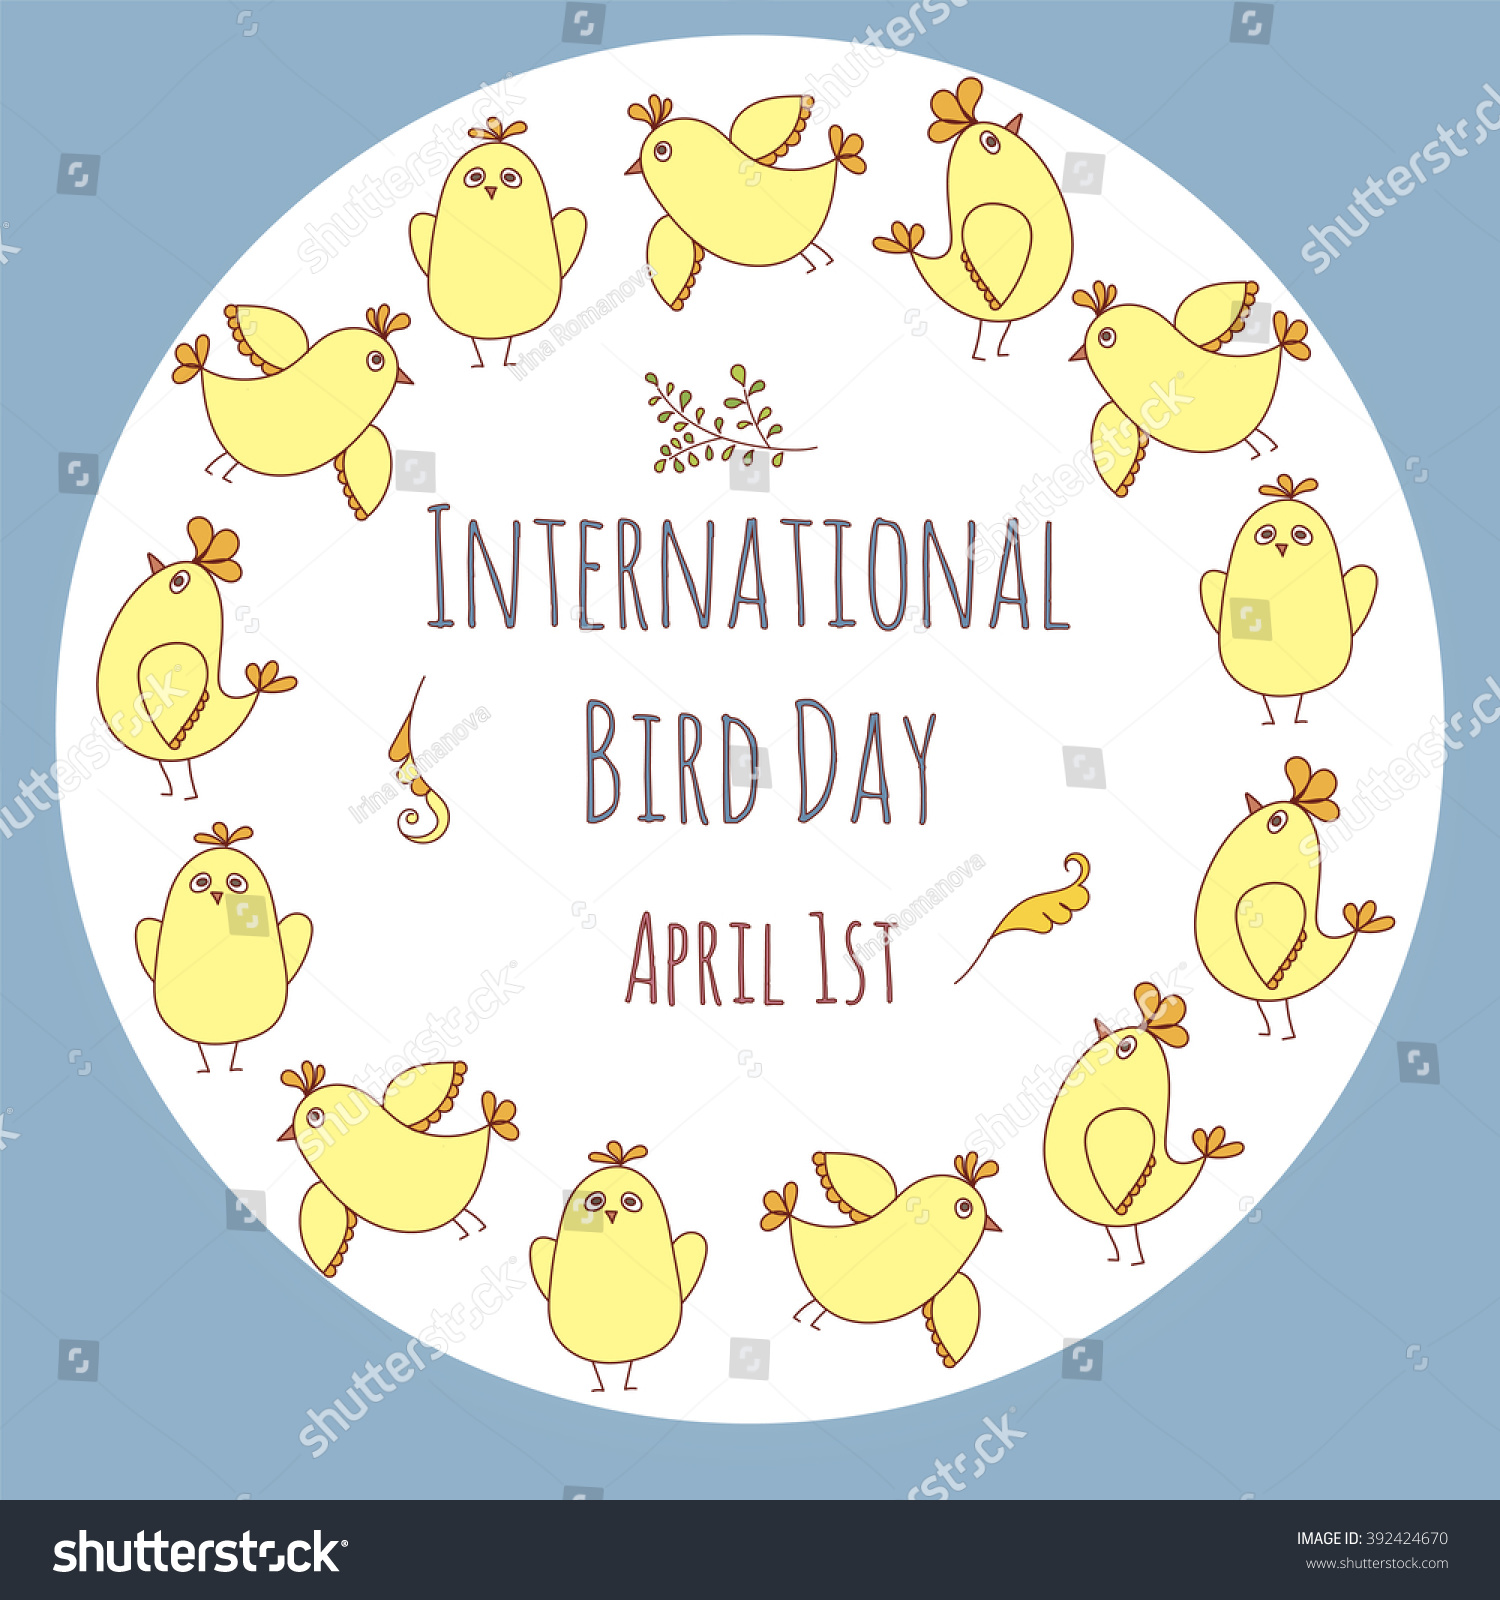 International bird day greeting card template stock vector 392424670 international bird day greeting card template kristyandbryce Image collections